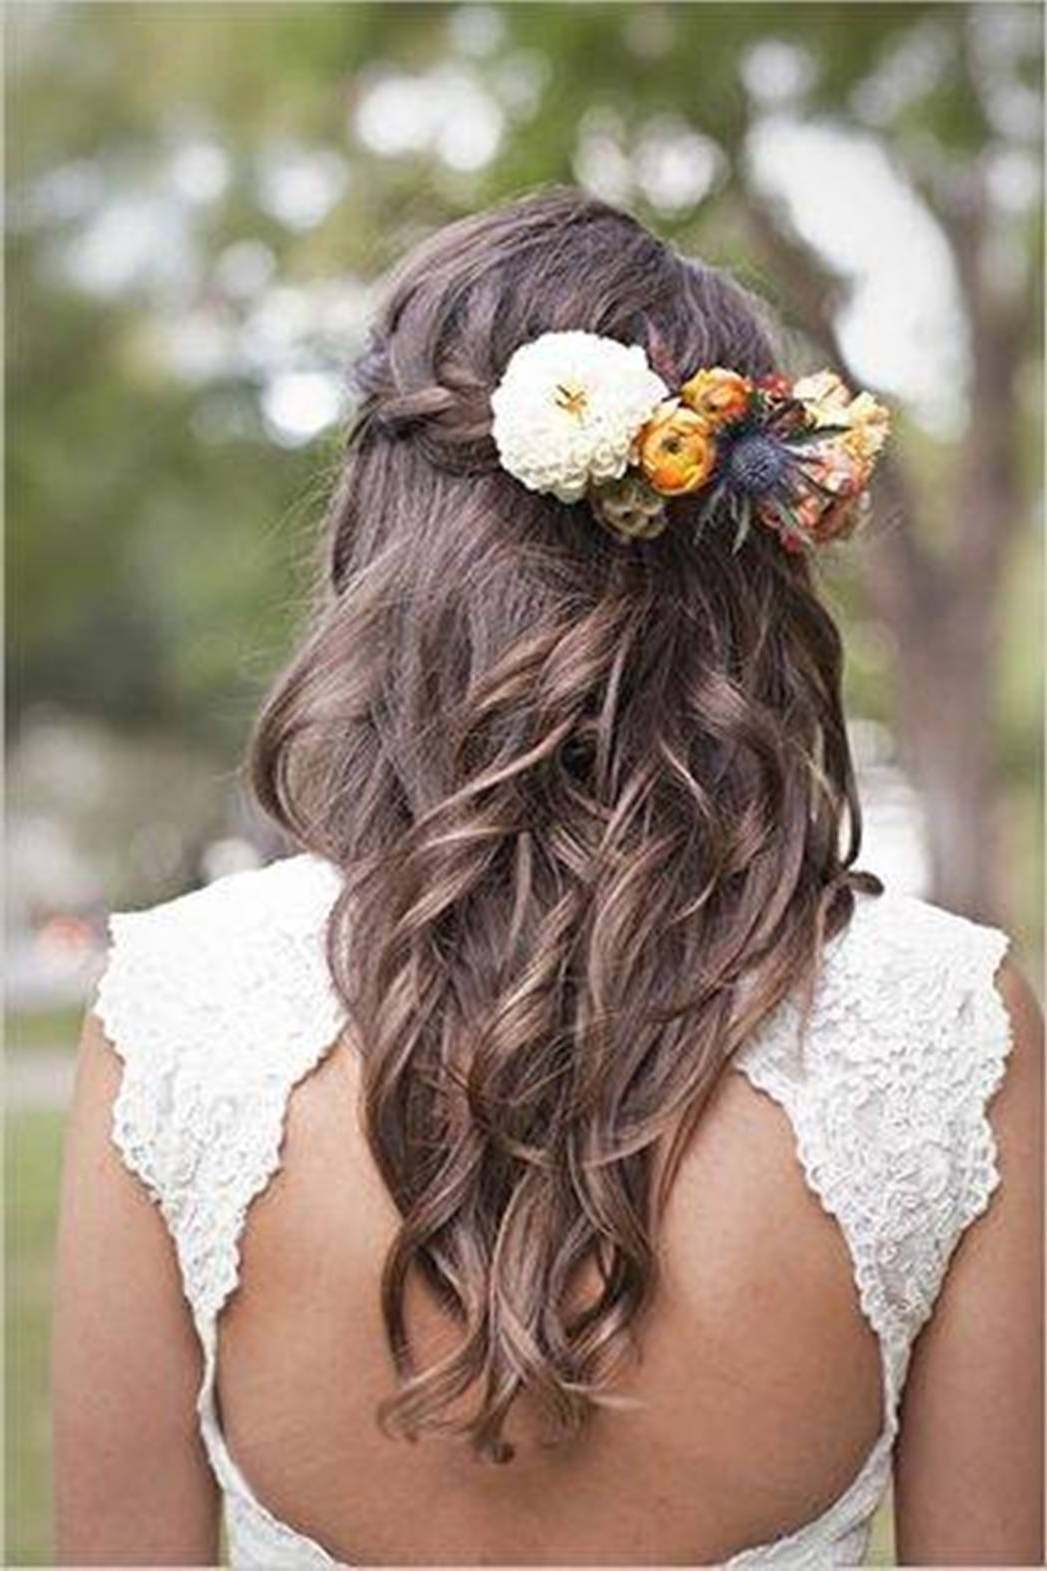 Braid Hairstyles For Wedding Black Styles Side Bridal Box Weddings Within Latest Plaits And Curls Wedding Hairstyles (View 14 of 15)